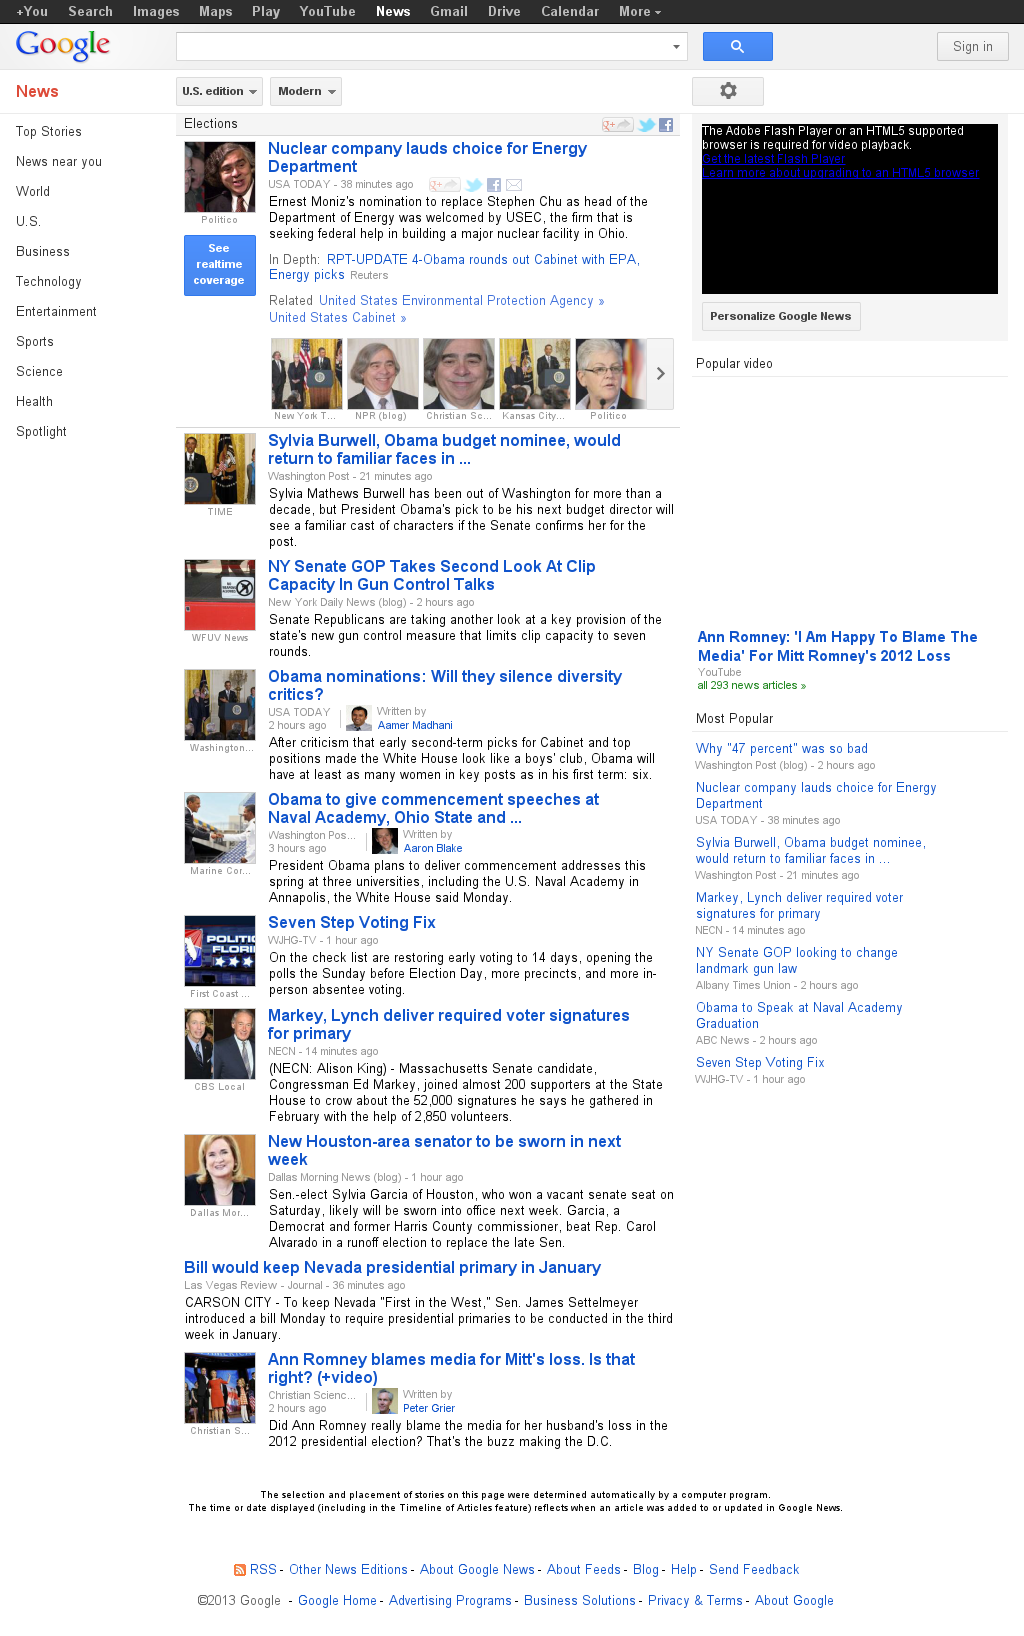 Google News: Elections at Tuesday March 5, 2013, 12:09 a.m. UTC